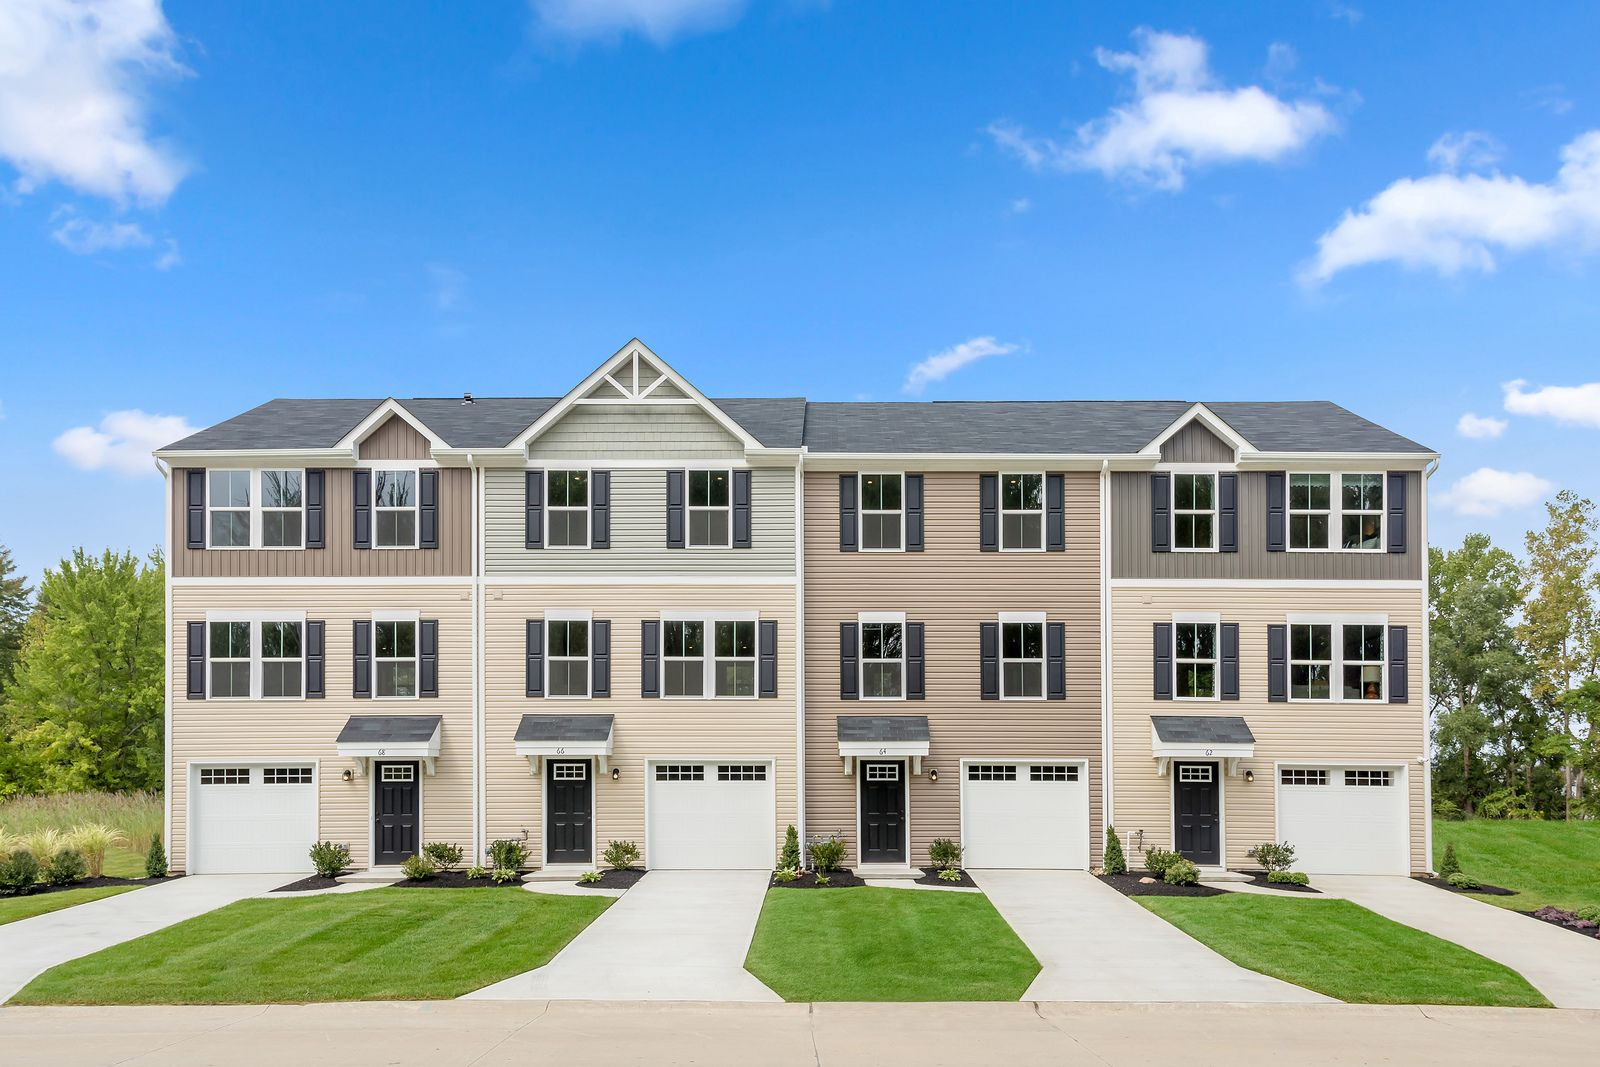 Own a townhome or single-family home for the best value in the area!:Schedule a visitto learn more about how you can own a townhome from the $270s or single-family home from the $320s, close to Uptown!